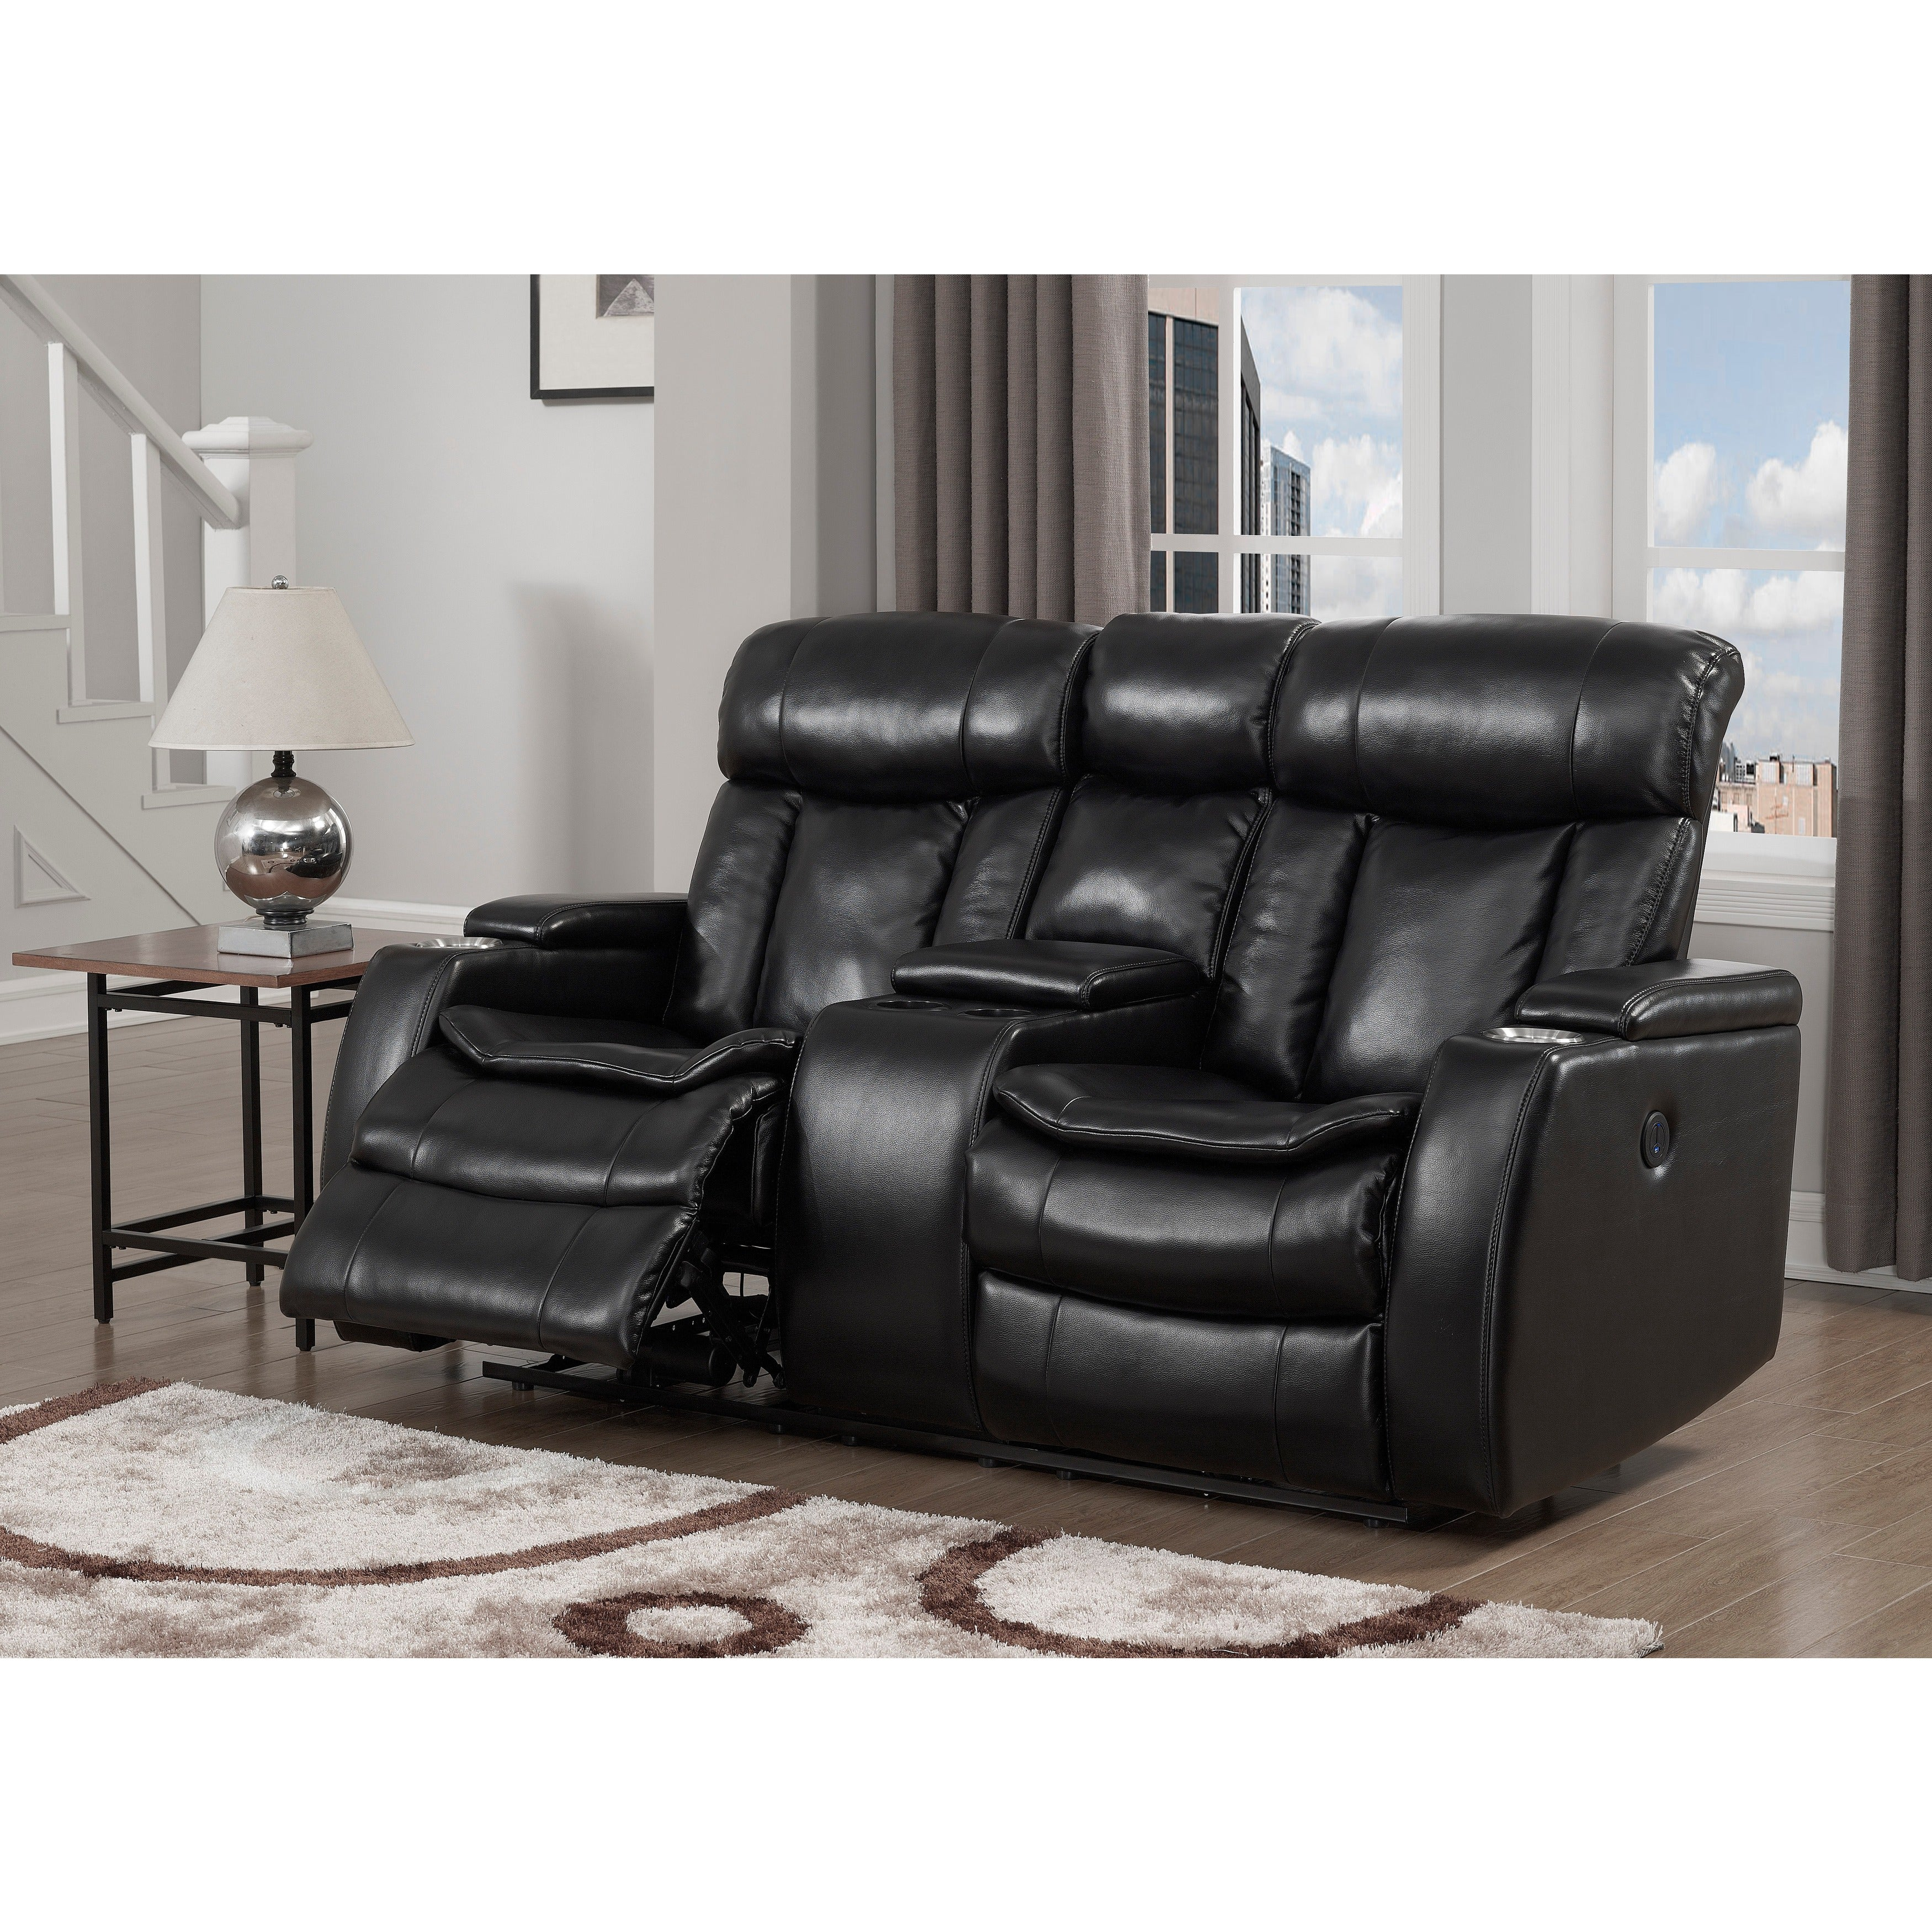 Shop Black Friday Deals On Black Power Recliner Loveseat With Usb On Sale Overstock 17678286